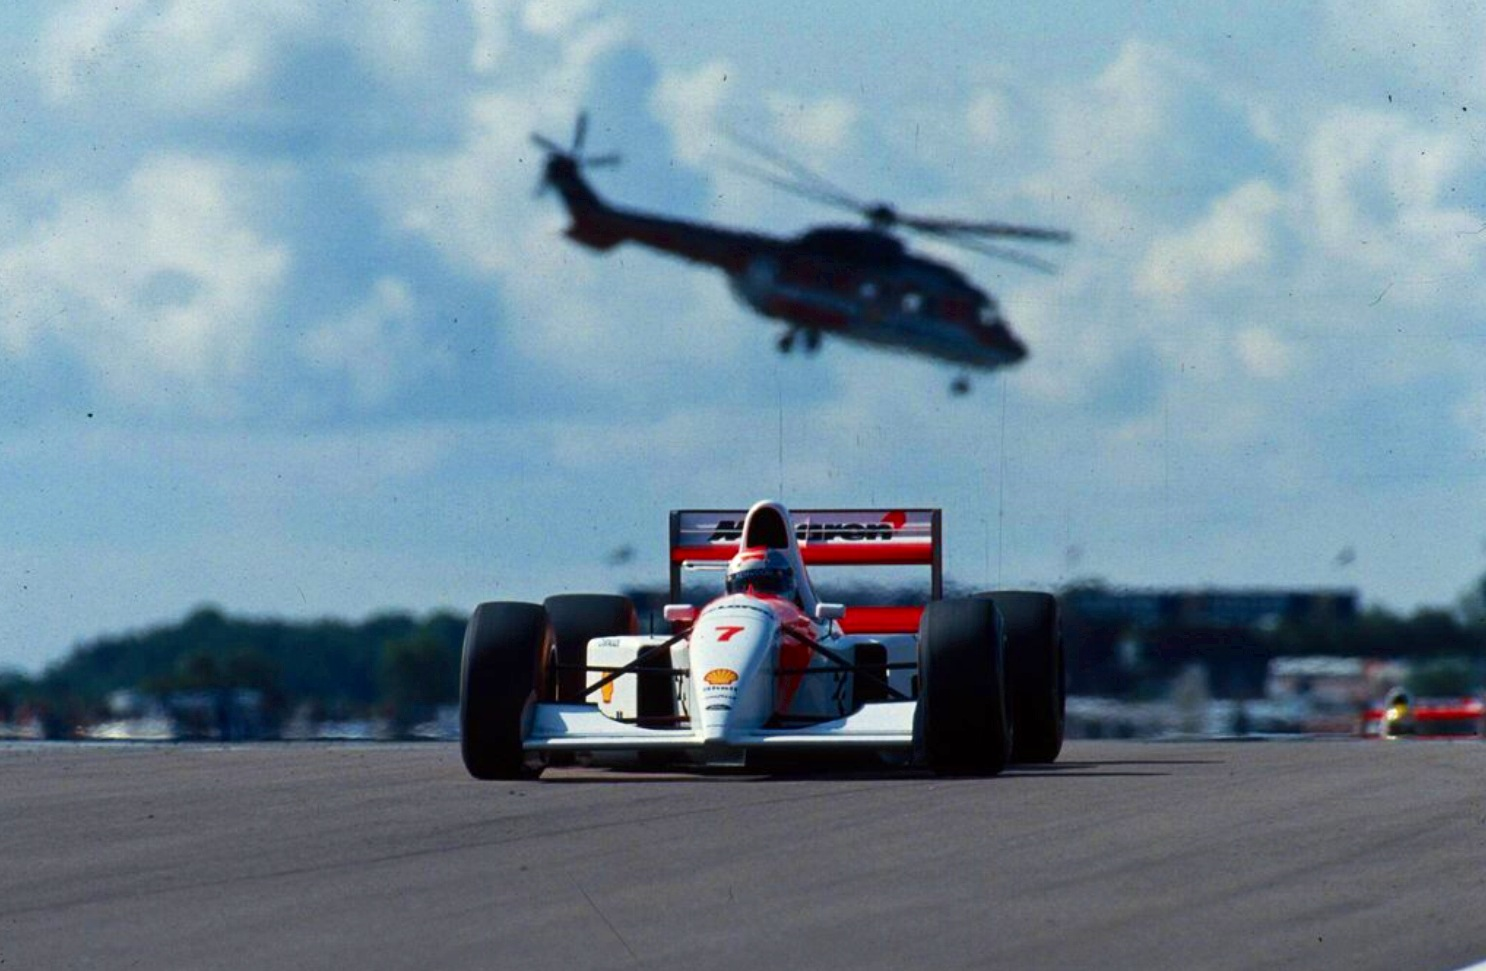 Michael Andretti followed by his illustrious teammate, Silverstone 1993.